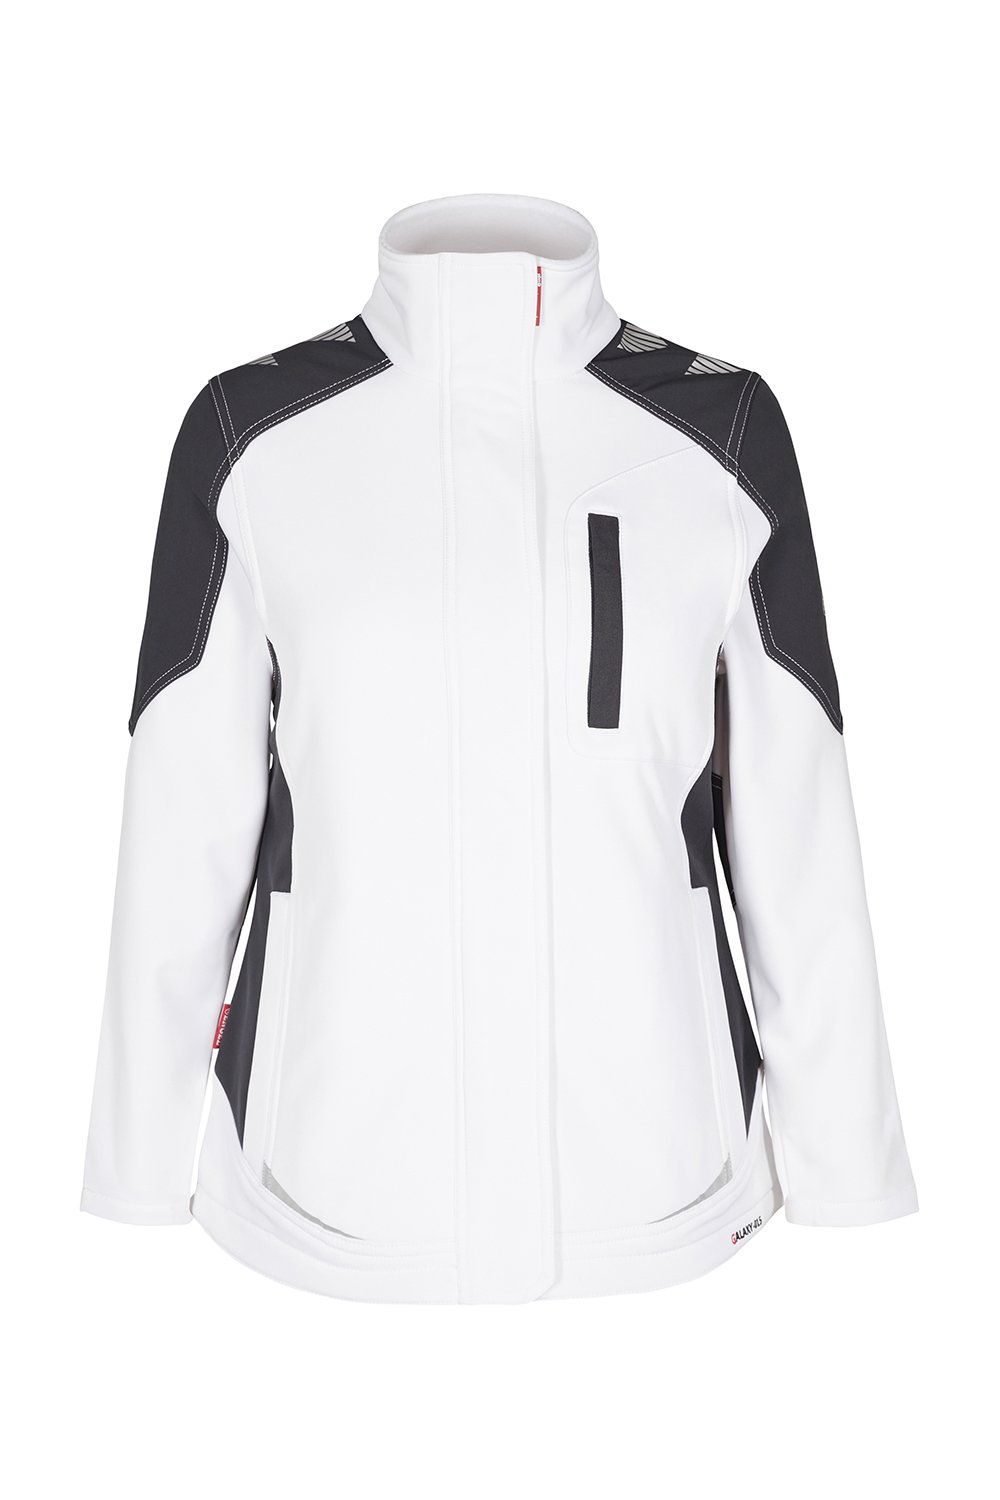 Damen-Softshelljacke, weiss/anthrazit